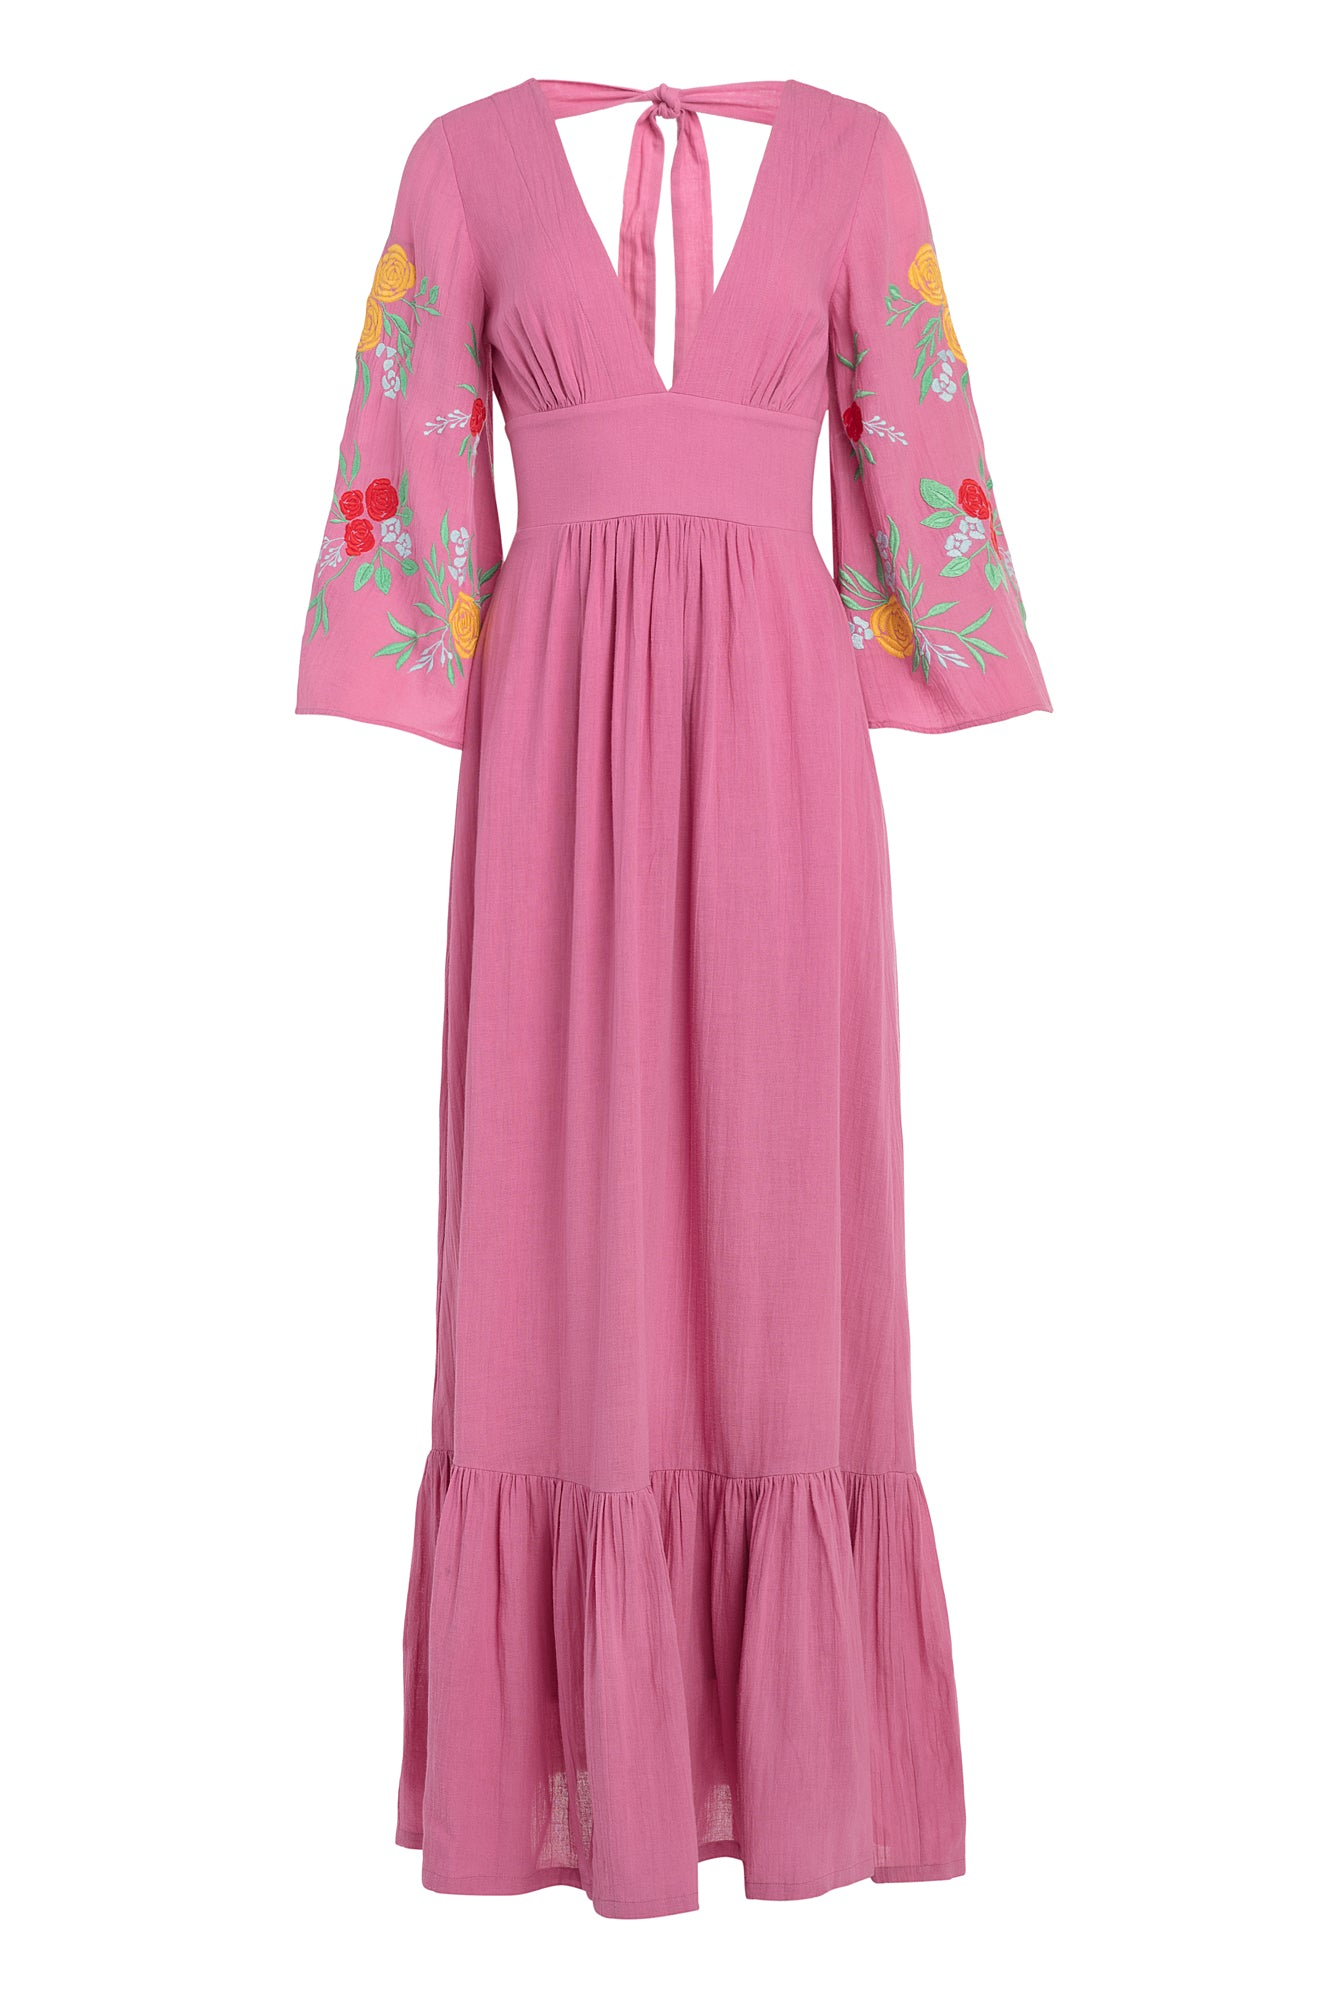 Carolina K Maribel Dress in Wild Rose Peonies